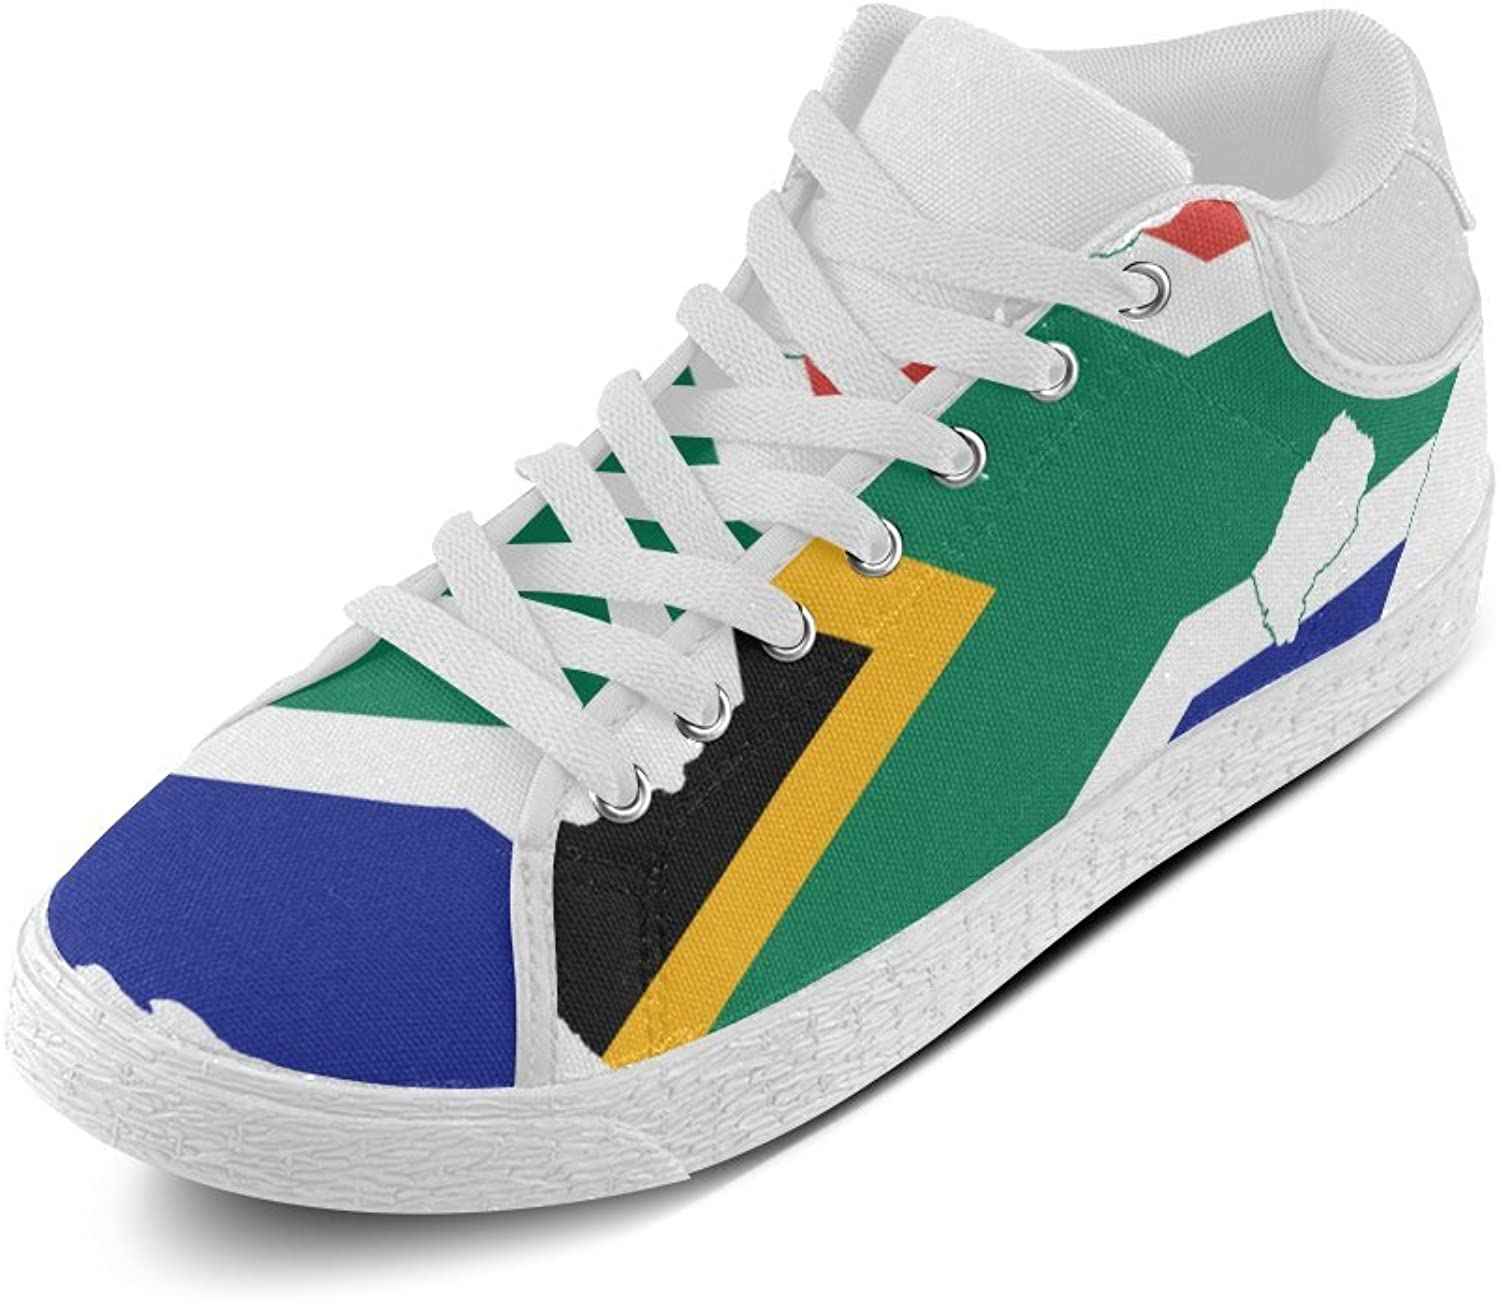 N.Y.L.A. ADE Flag Map of South Africa Women's Chukka Canvas shoes M003